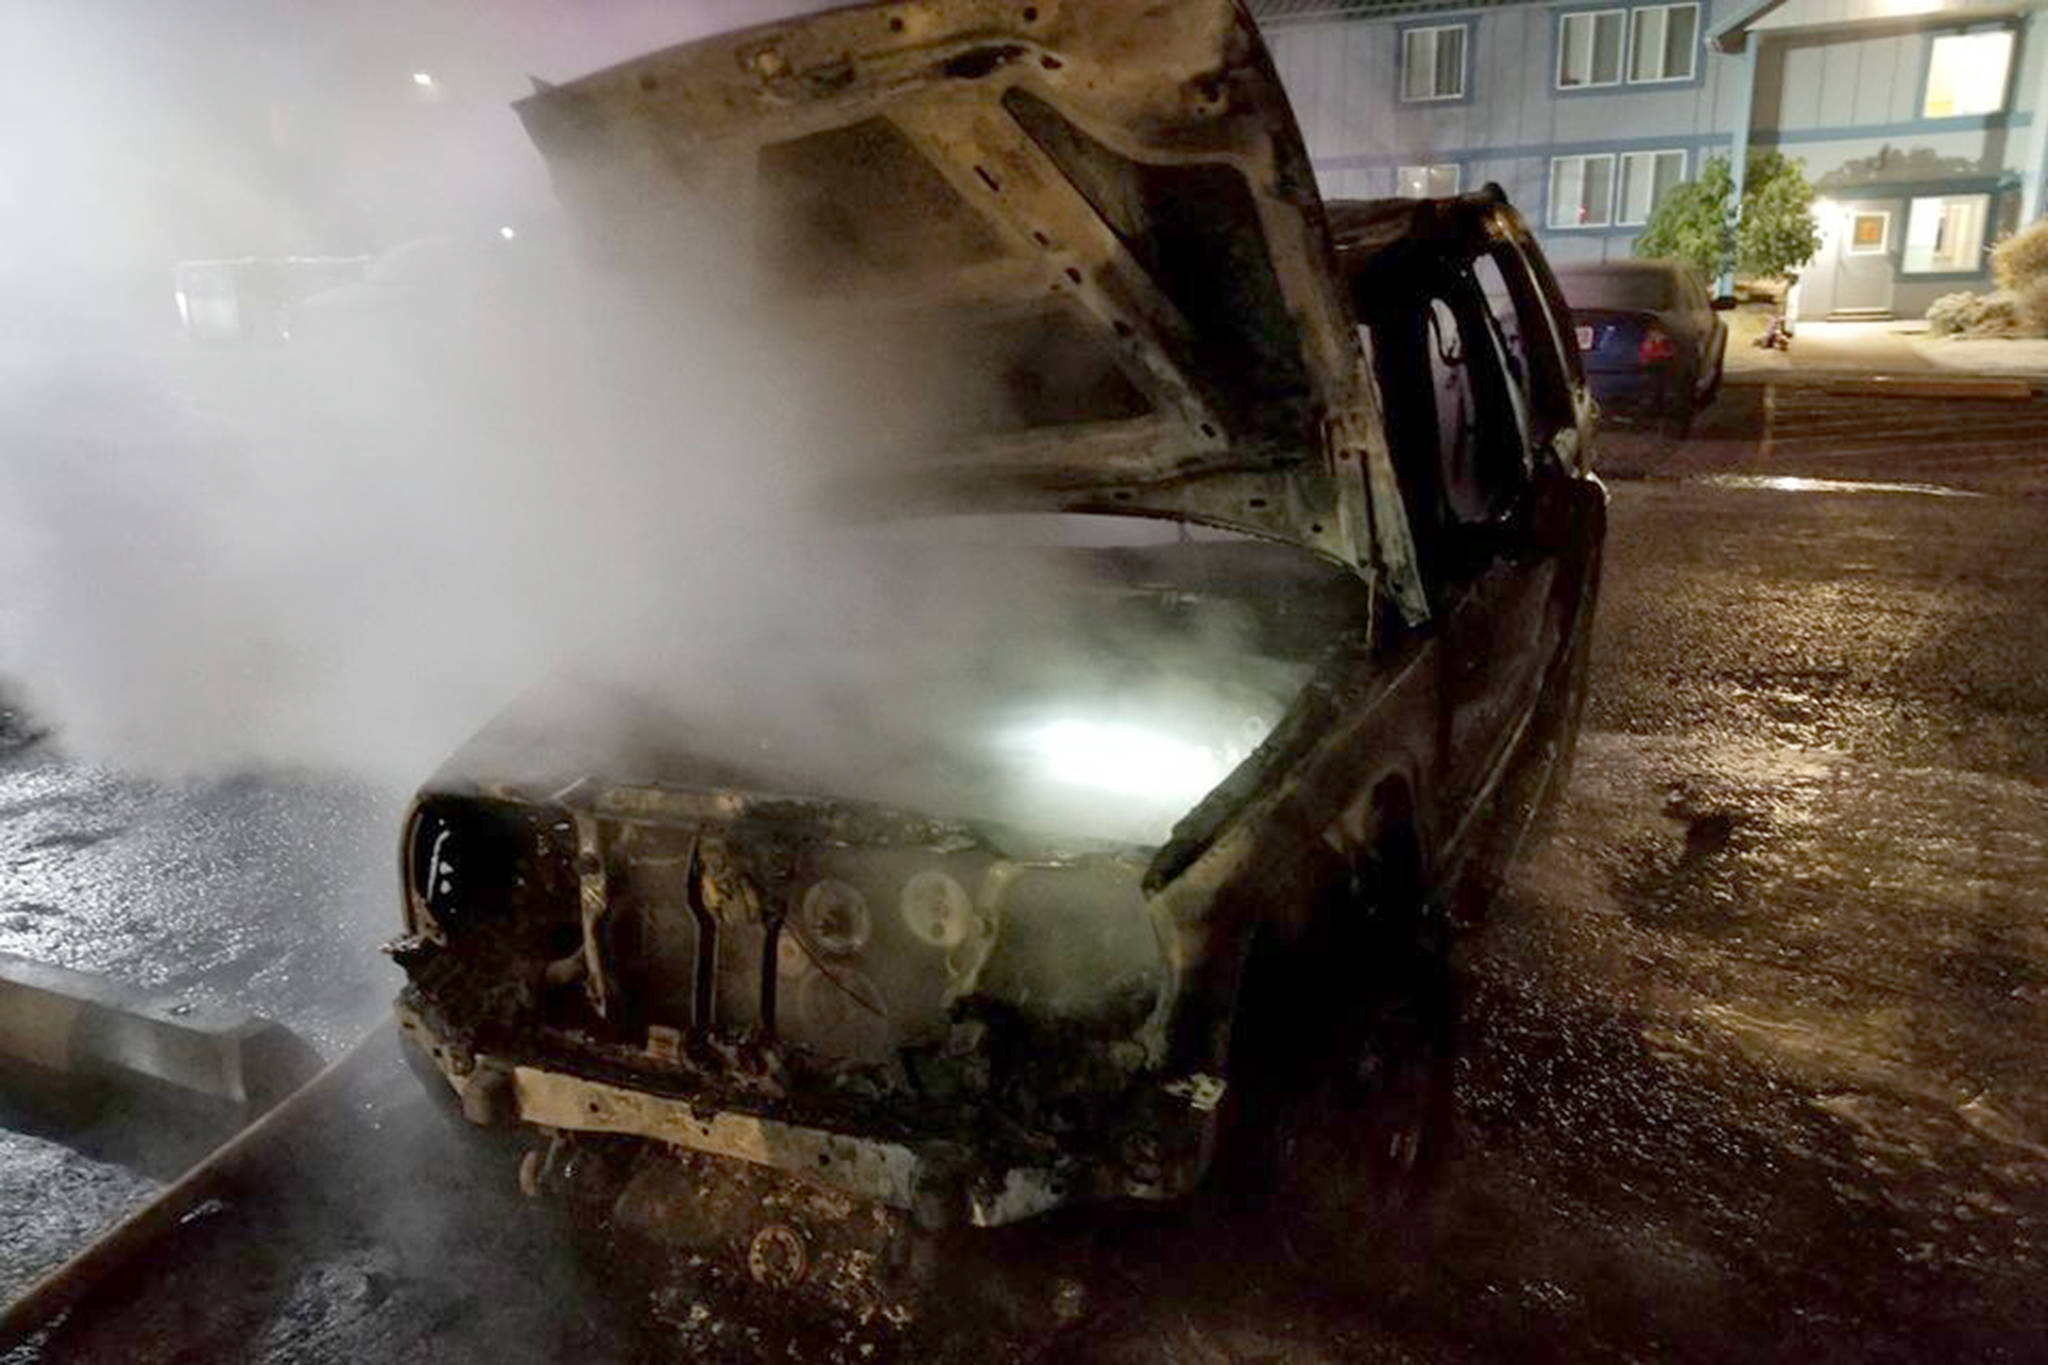 A Jeep Liberty is pictured after a fire in the early morning of Tuesday, Nov. 6, 2018. (Courtesy Photo | Capital City Fire/Rescue)